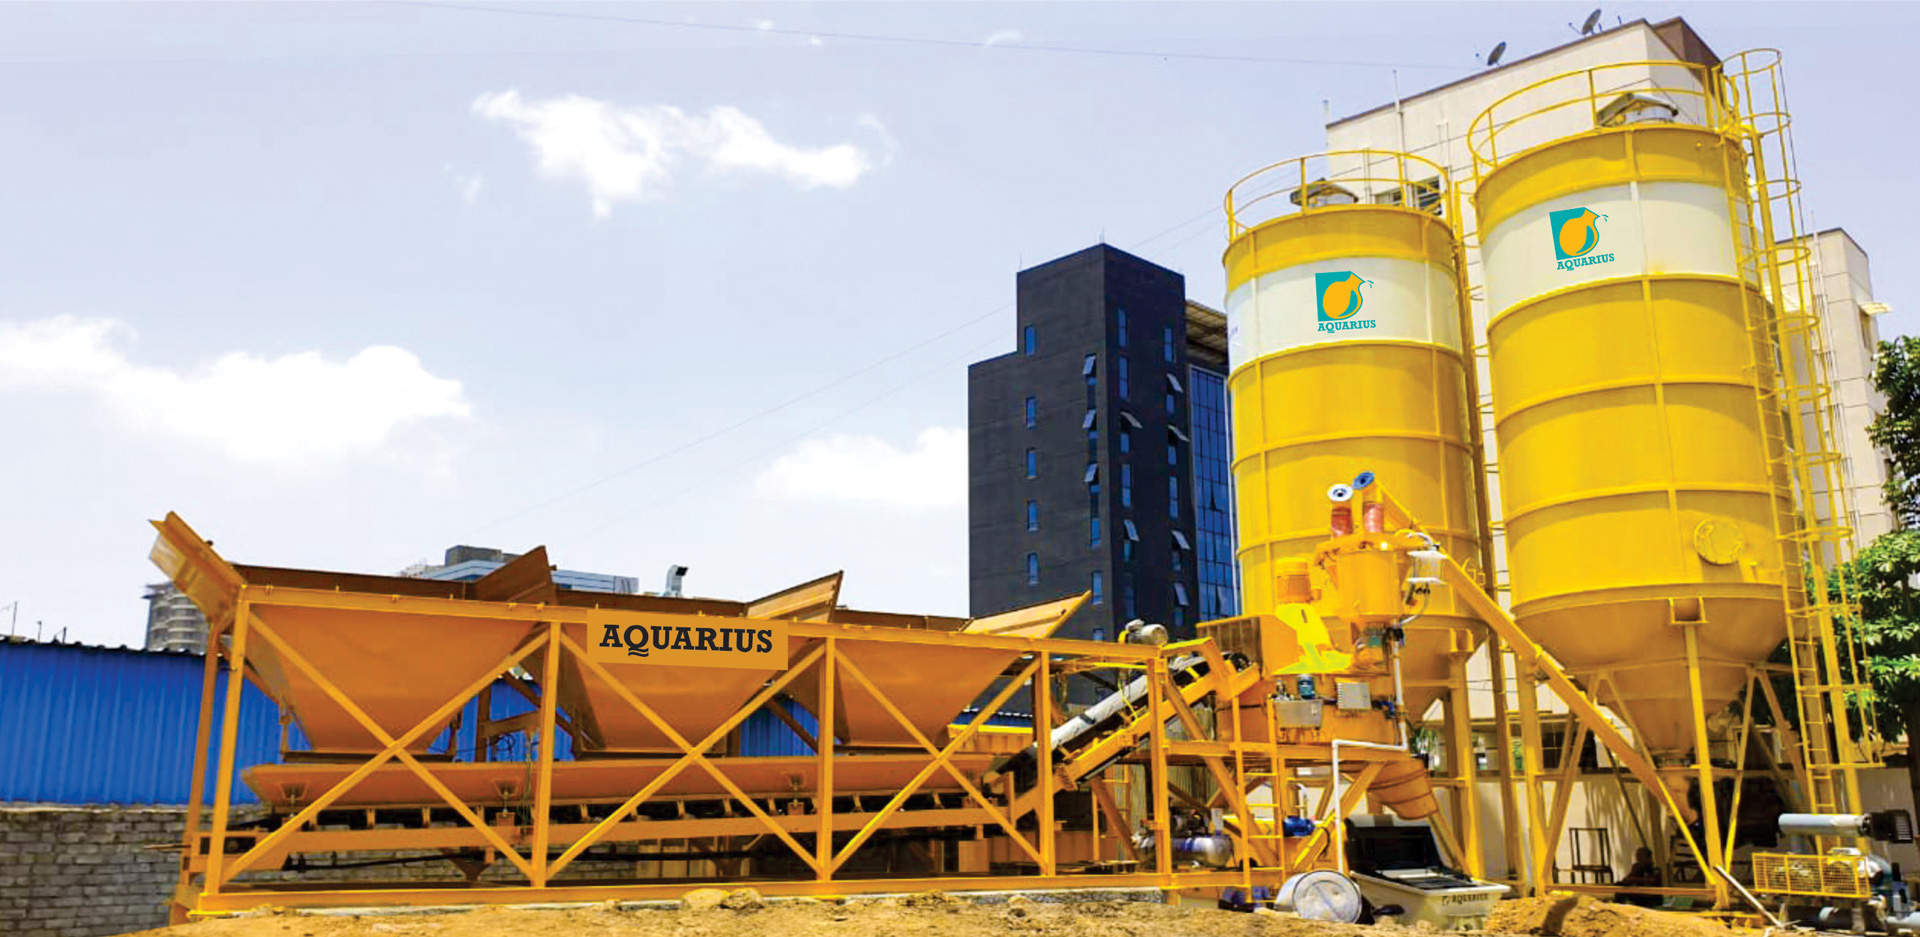 Aquarius SMP T 30 Batching Plant working at V Realty Site, Pune